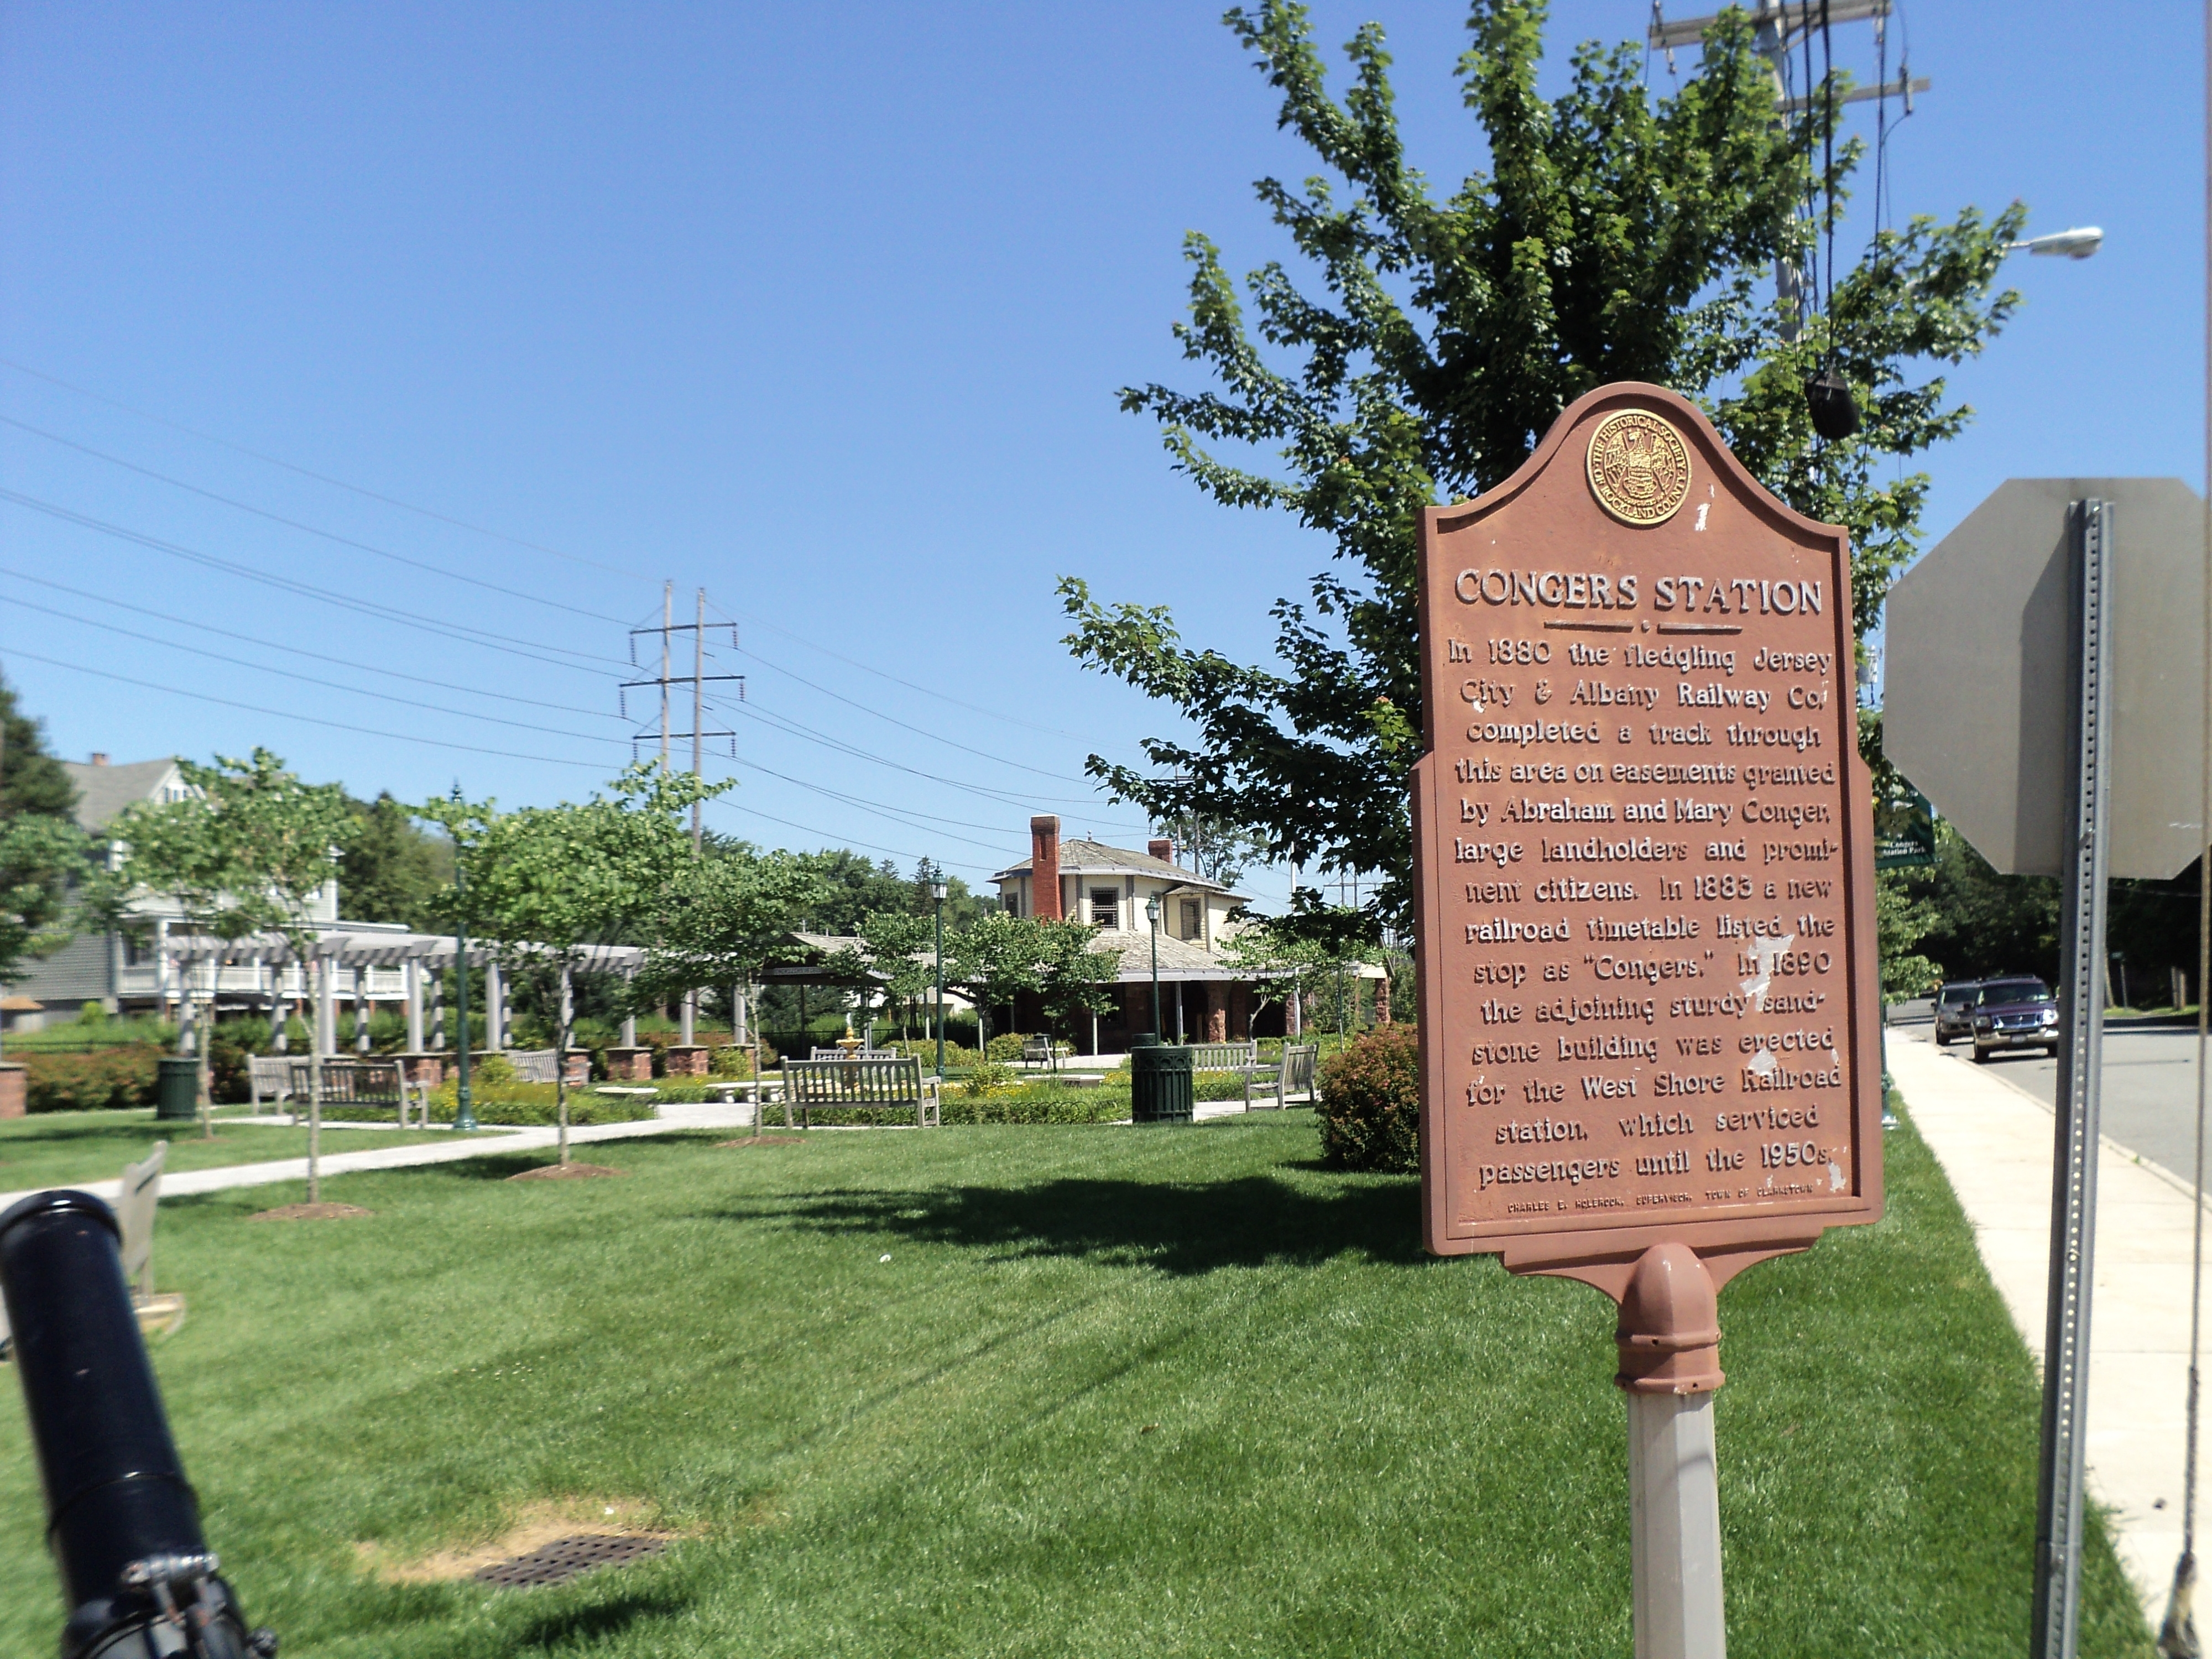 Congers Station Marker